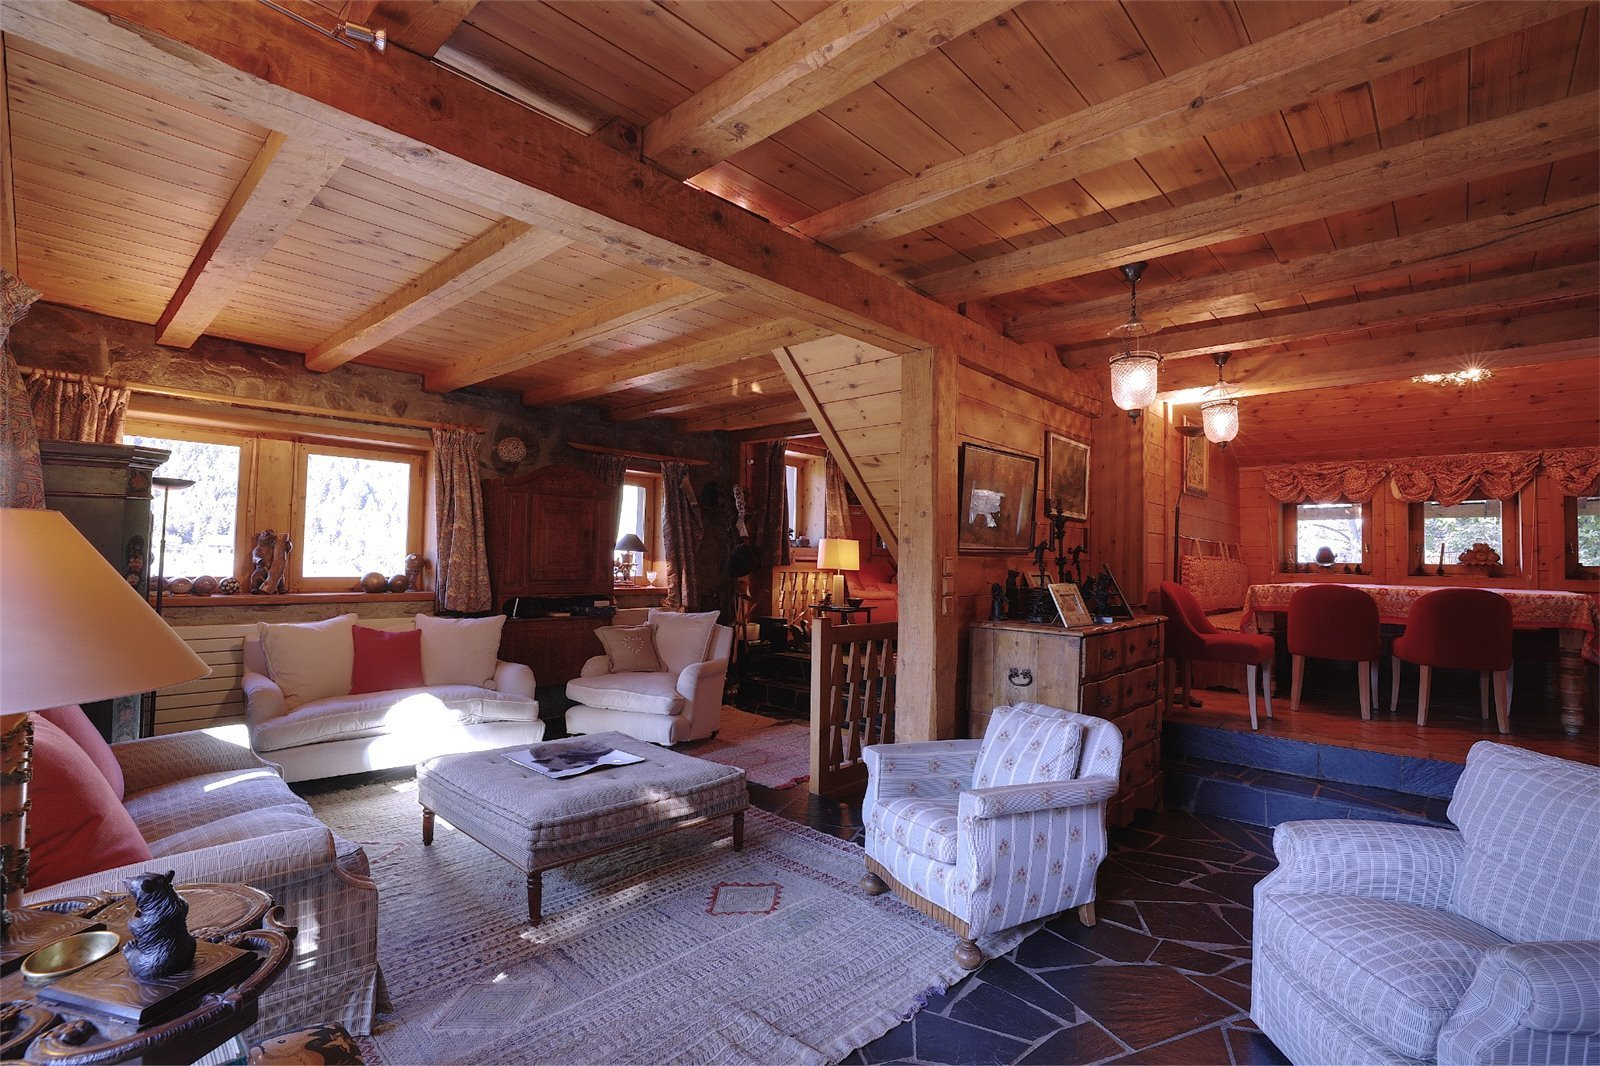 Buying Villa Méribel With a private setting ideally placed for central Méribel, charming chalet with 6 en suite bedrooms, a spacious terrace, stunning views, garage and cellar.